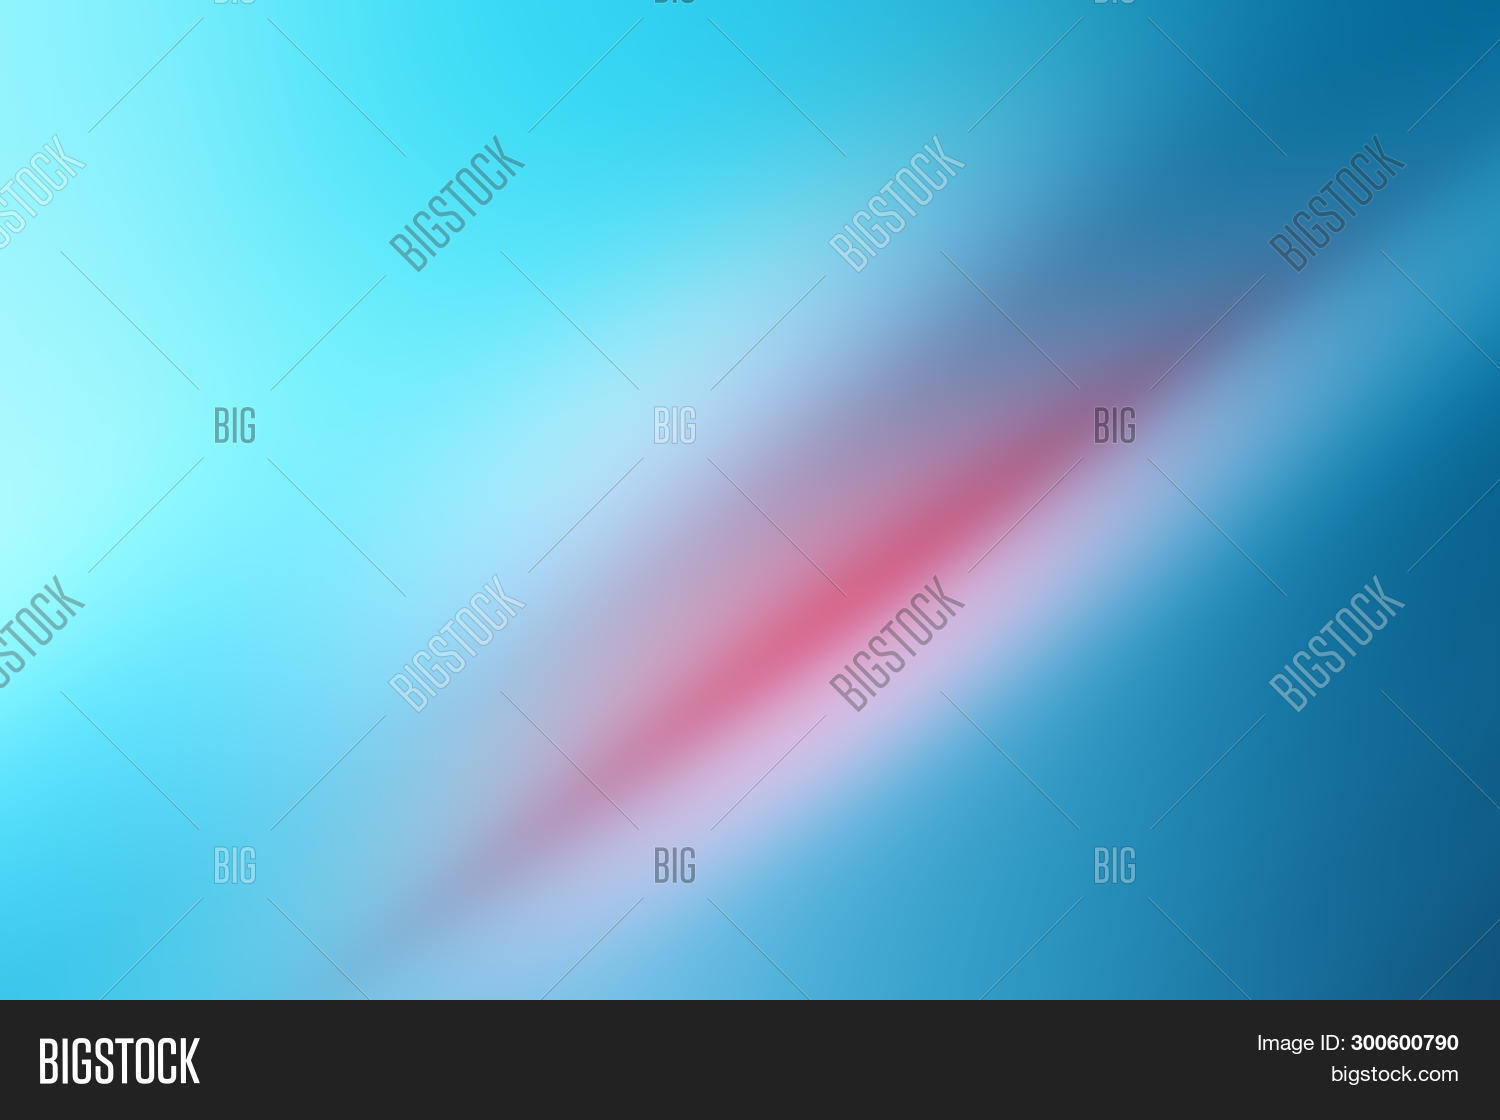 abstract,aqua,background,biology,biomedical,biotechnology,blue,blur,bokeh,business,chemical,chemistry,clean,cold,decor,decorative,defocus,dental,dentist,design,fresh,gradient,graphic,health,healthy,illustration,lab,laboratory,medical,medicine,microbe,microscope,mineral,molecule,pharmacy,purity,refreshed,refreshing,research,science,scientific,shiny,soft,technology,texture,wallpaper,water,wellness,white,zen